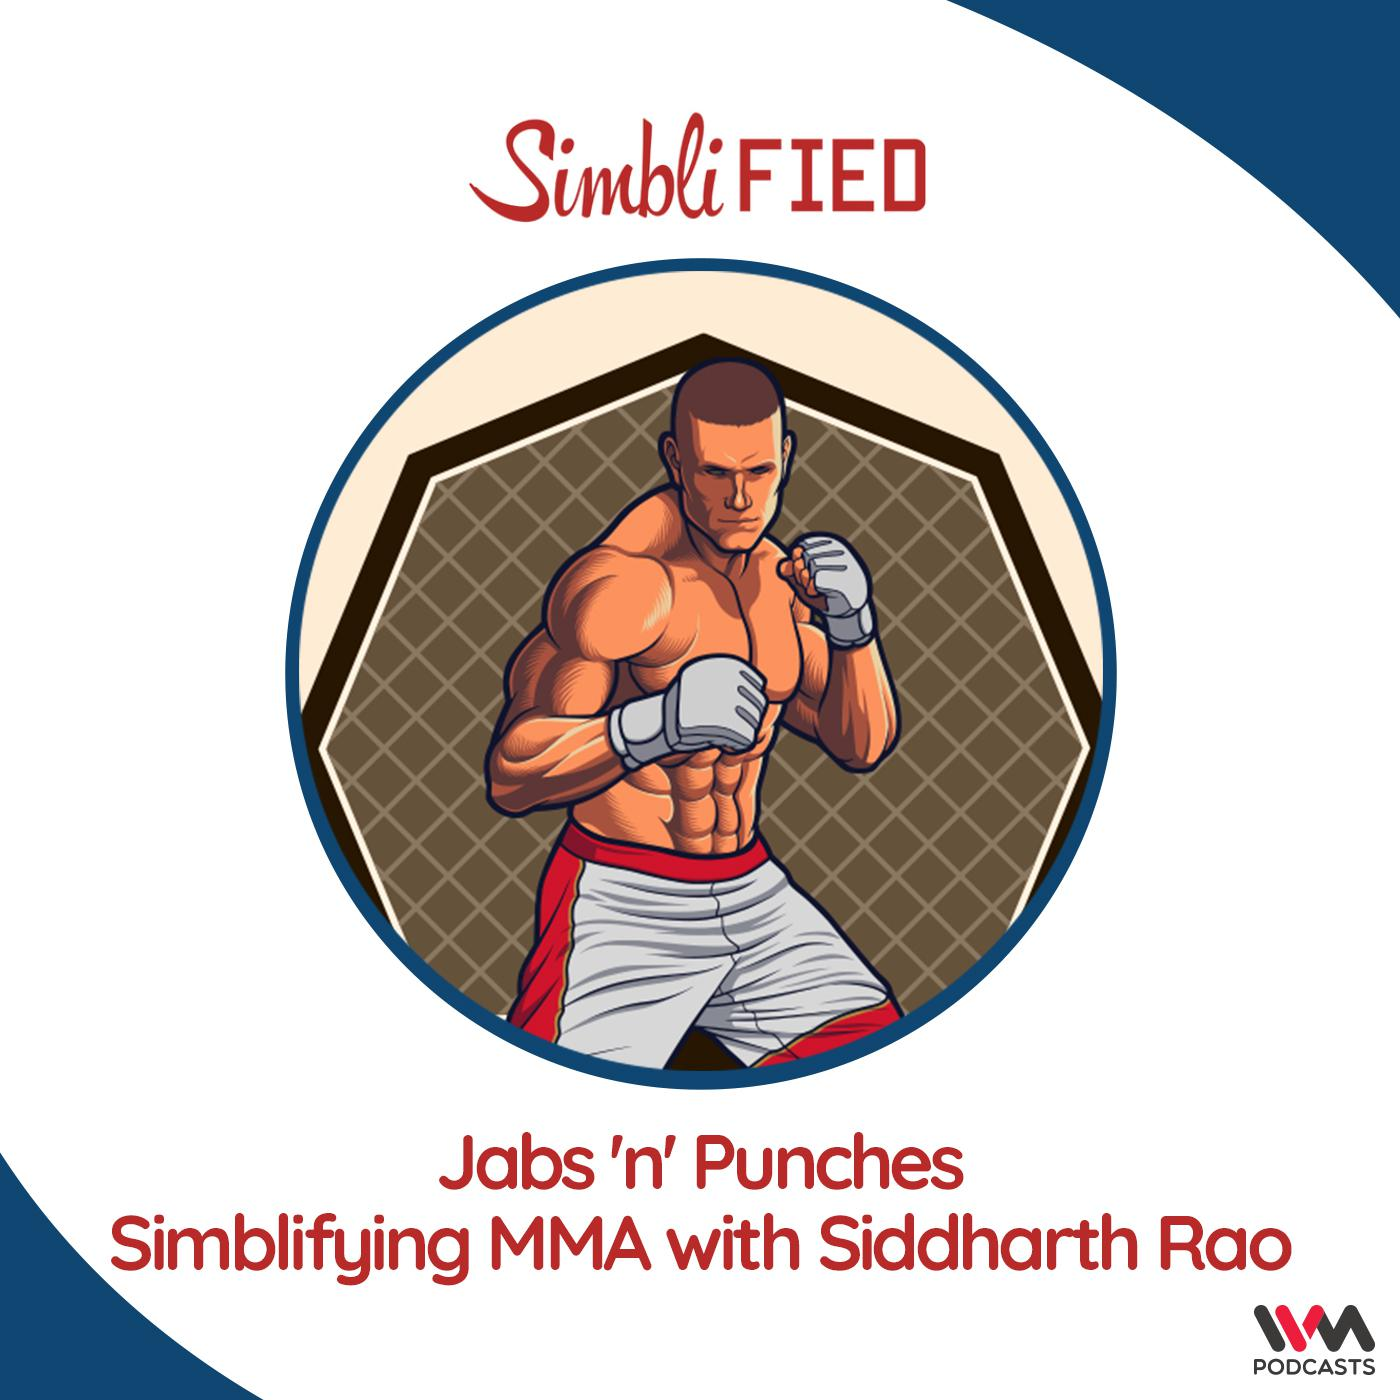 Jabs 'n' Punches: Simblifying MMA with Siddharth Rao